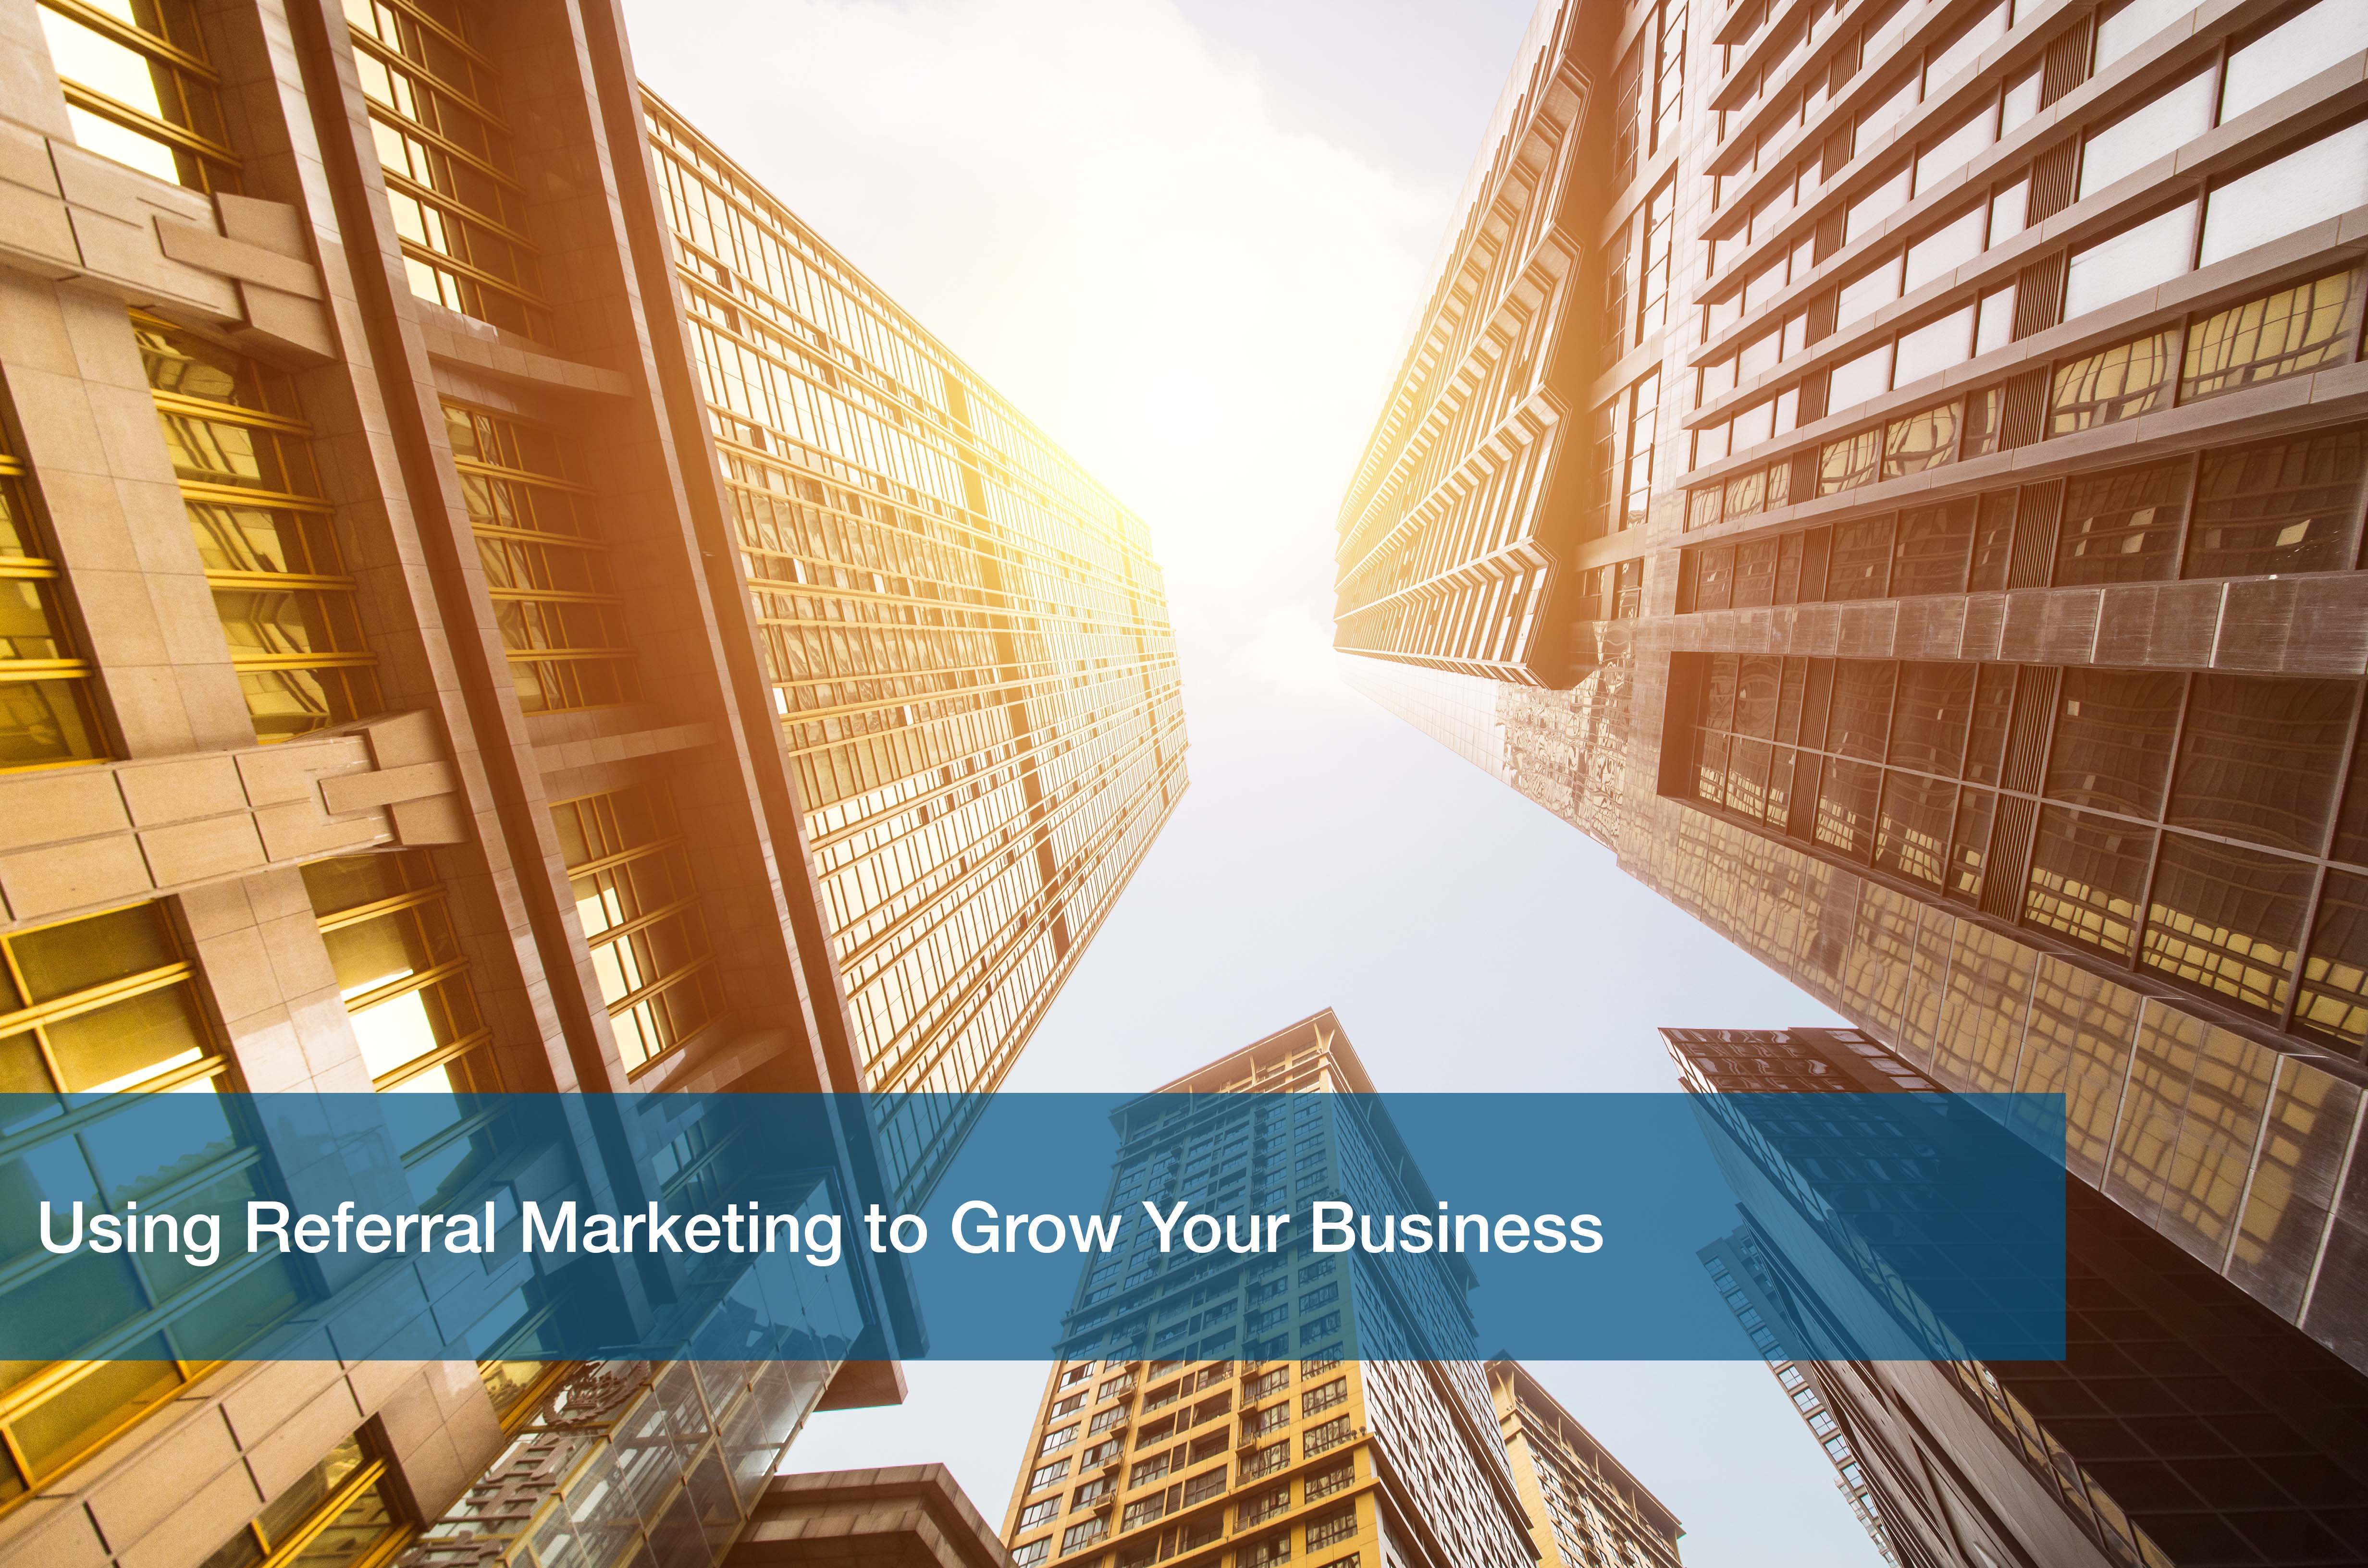 Using Referral Marketing to Grow Your Business